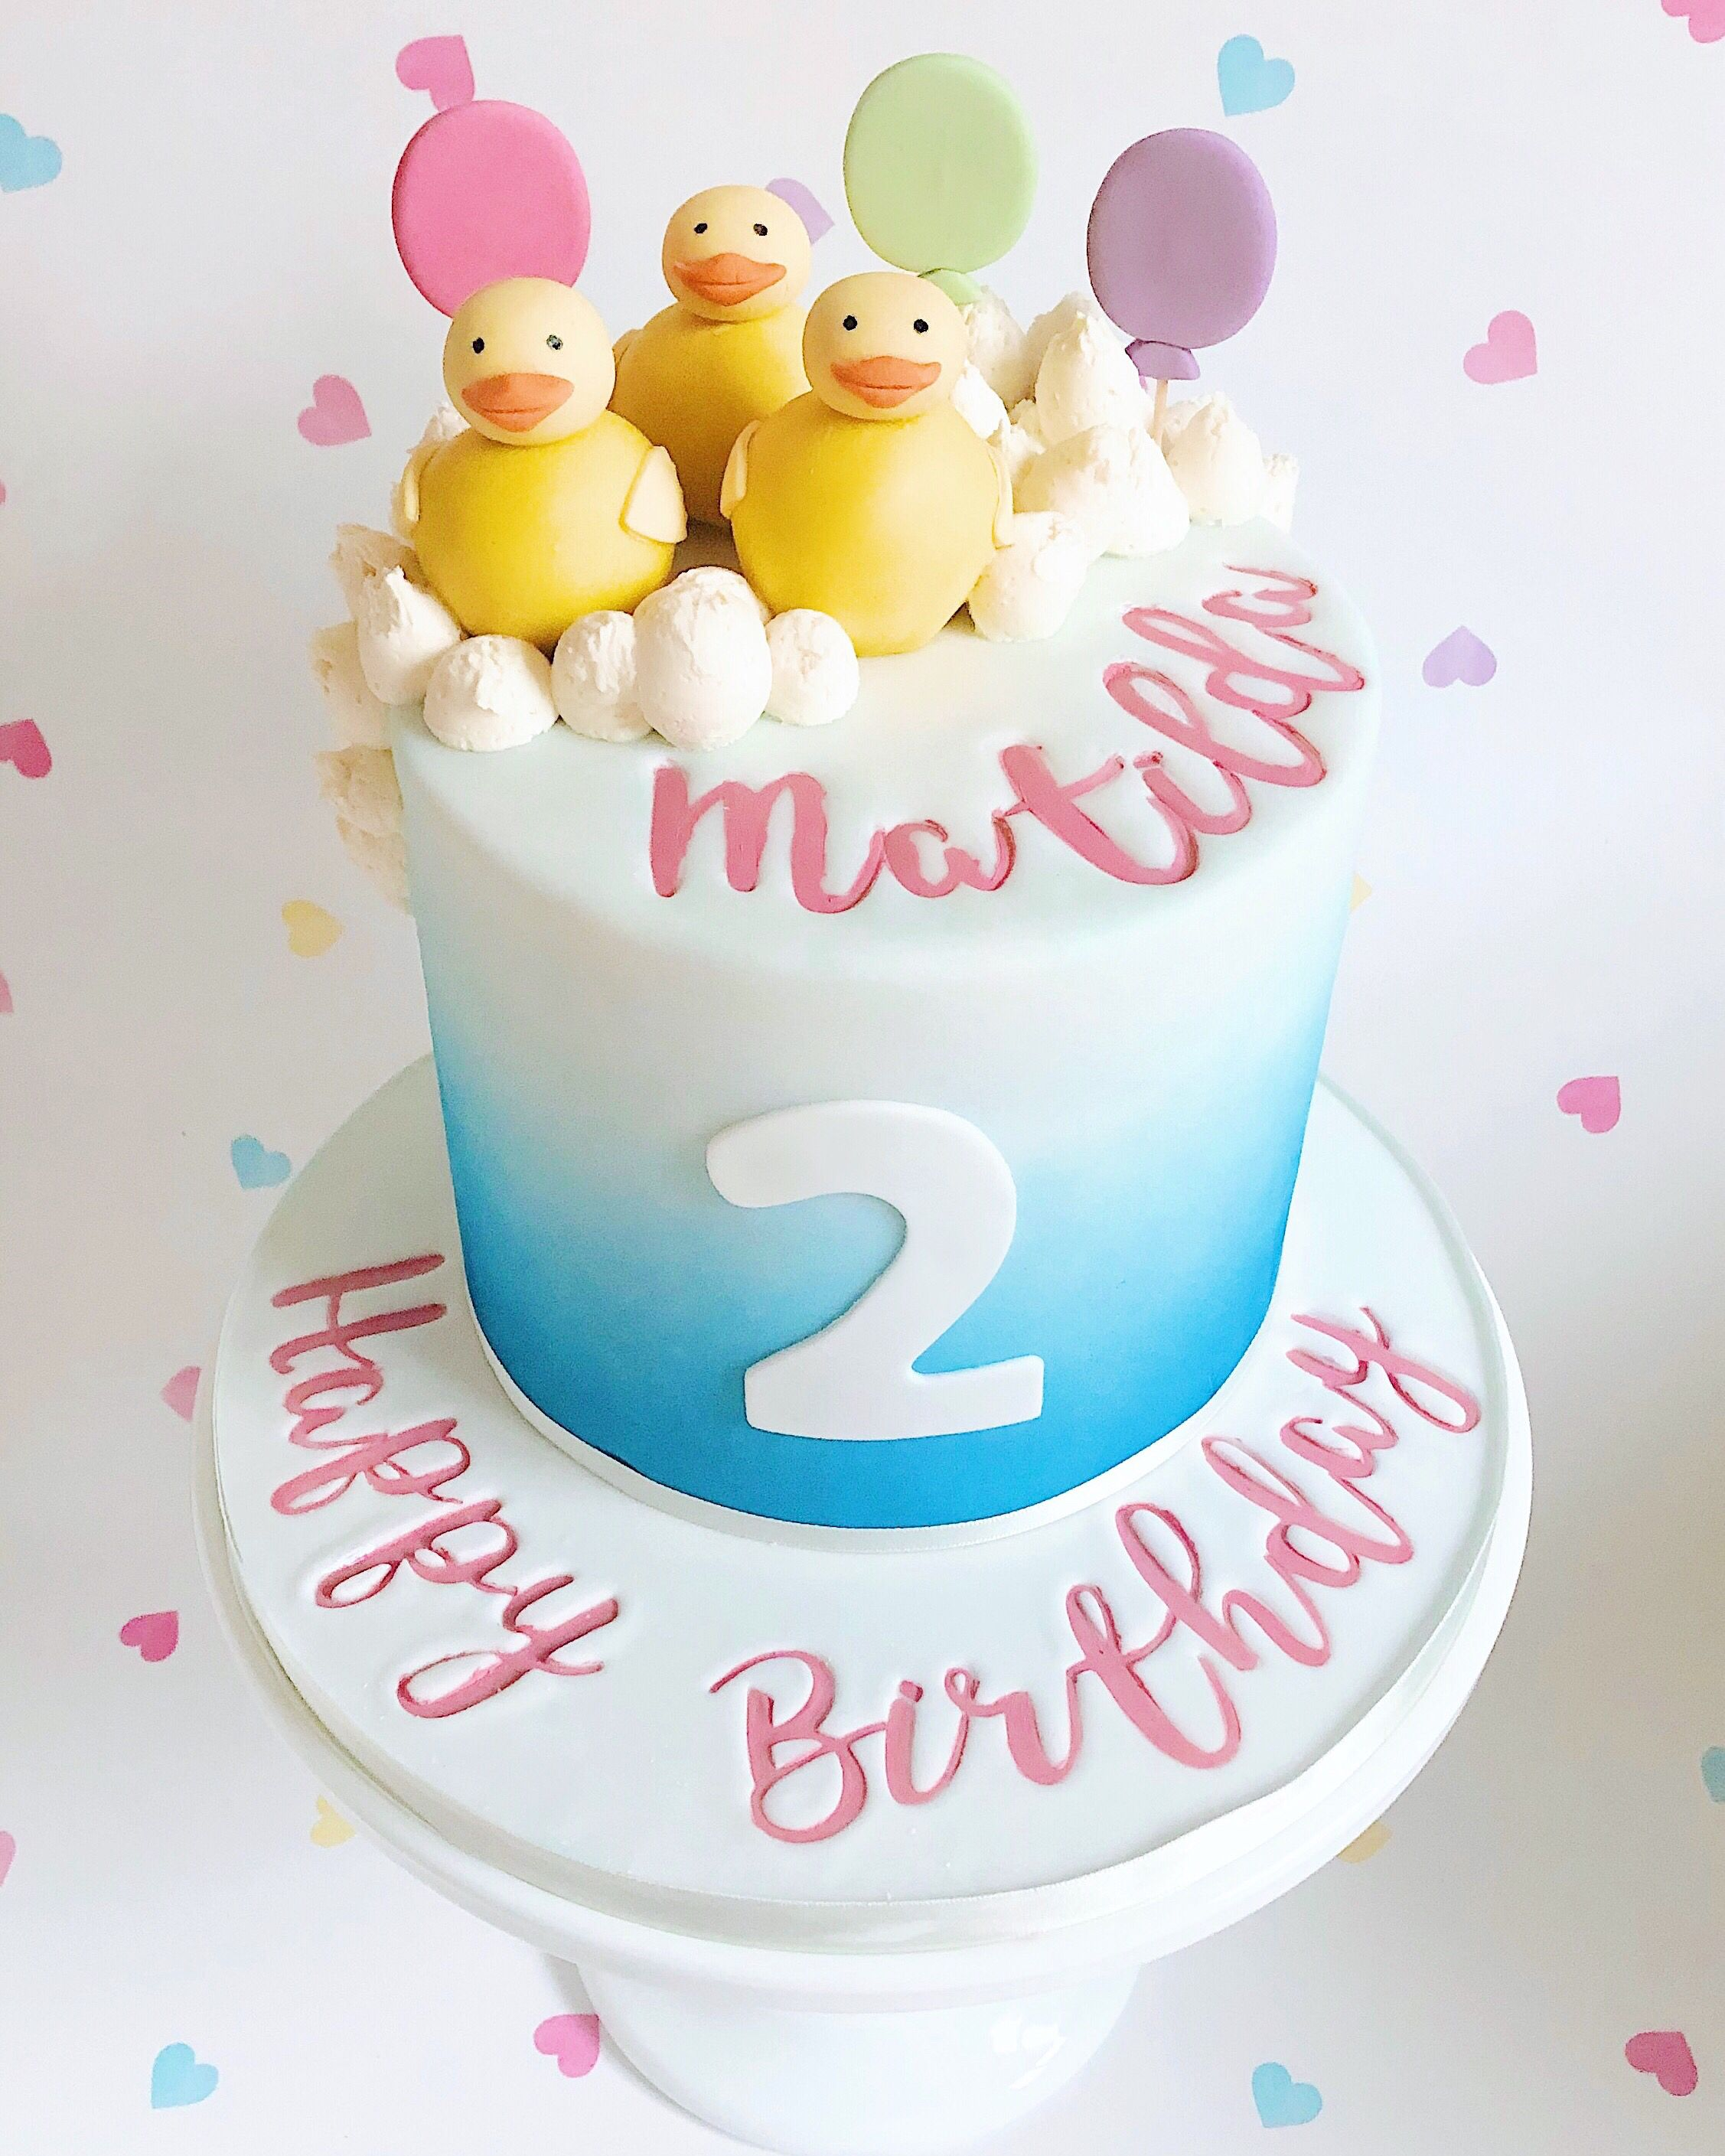 Surprising A 2Nd Birthday Cake With The Theme Ducks Birthday Cake Funny Birthday Cards Online Alyptdamsfinfo